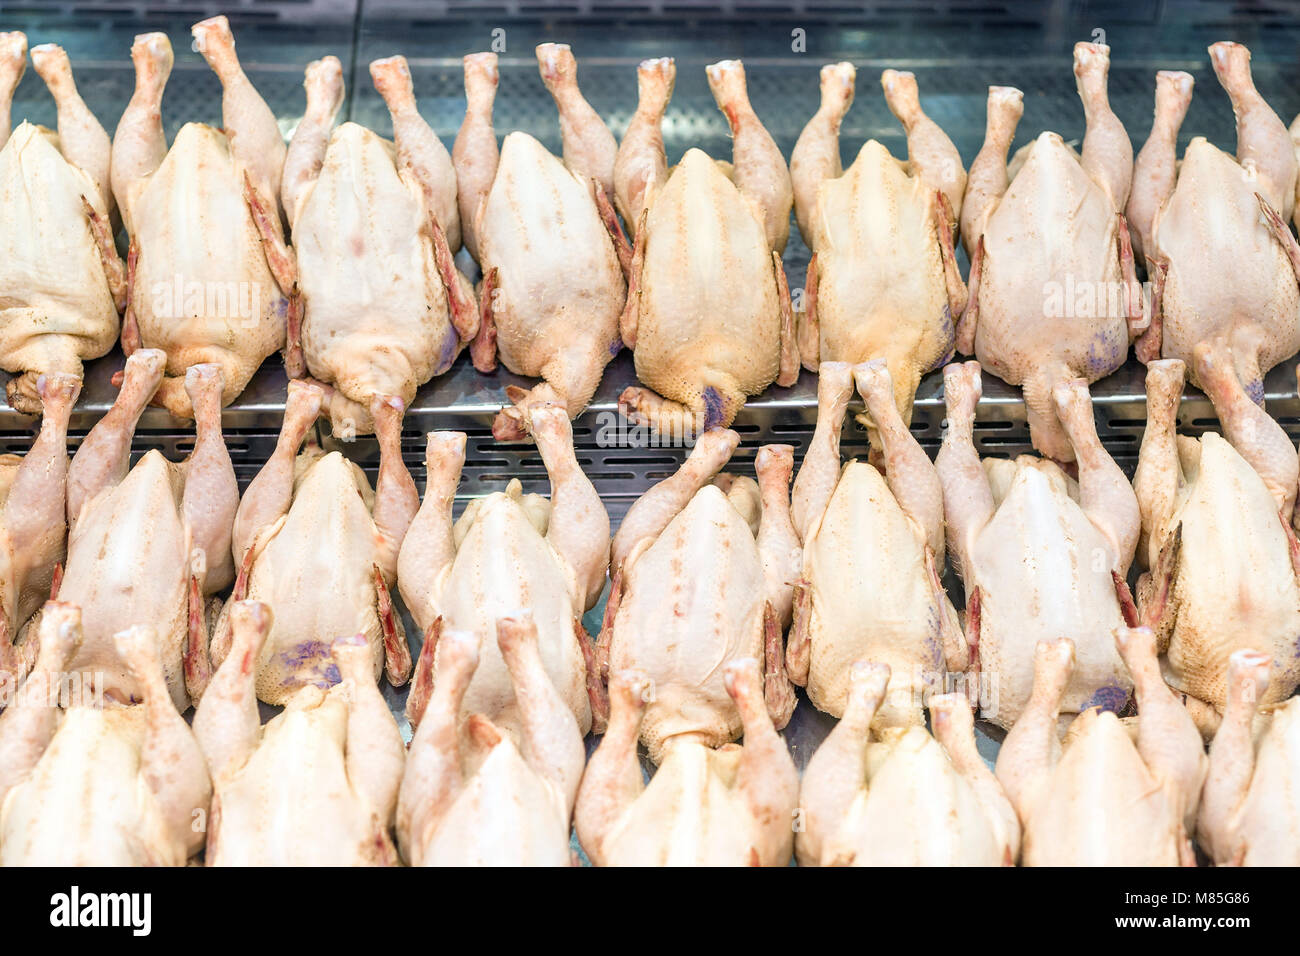 Rows of fresh raw chicken poultry at supermarket window-display. Poultry farm indystry. Livestock industry price - Stock Image